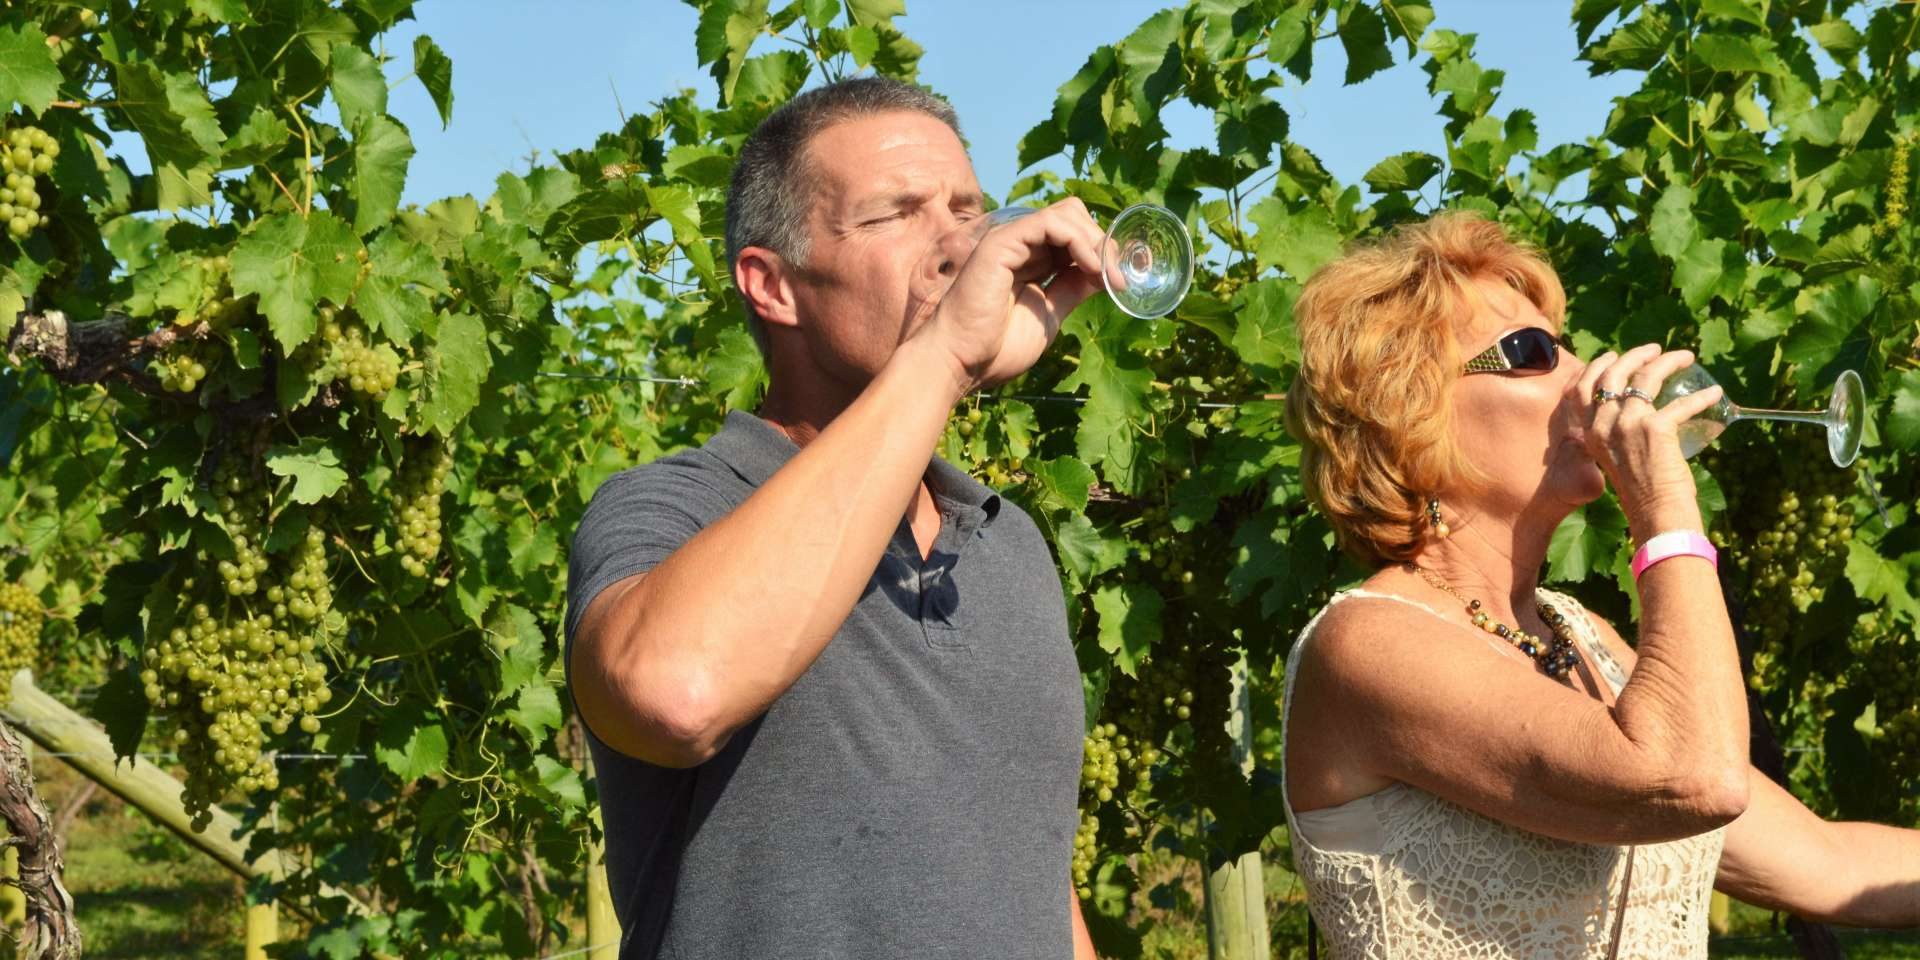 Wine drinkers in vineyard